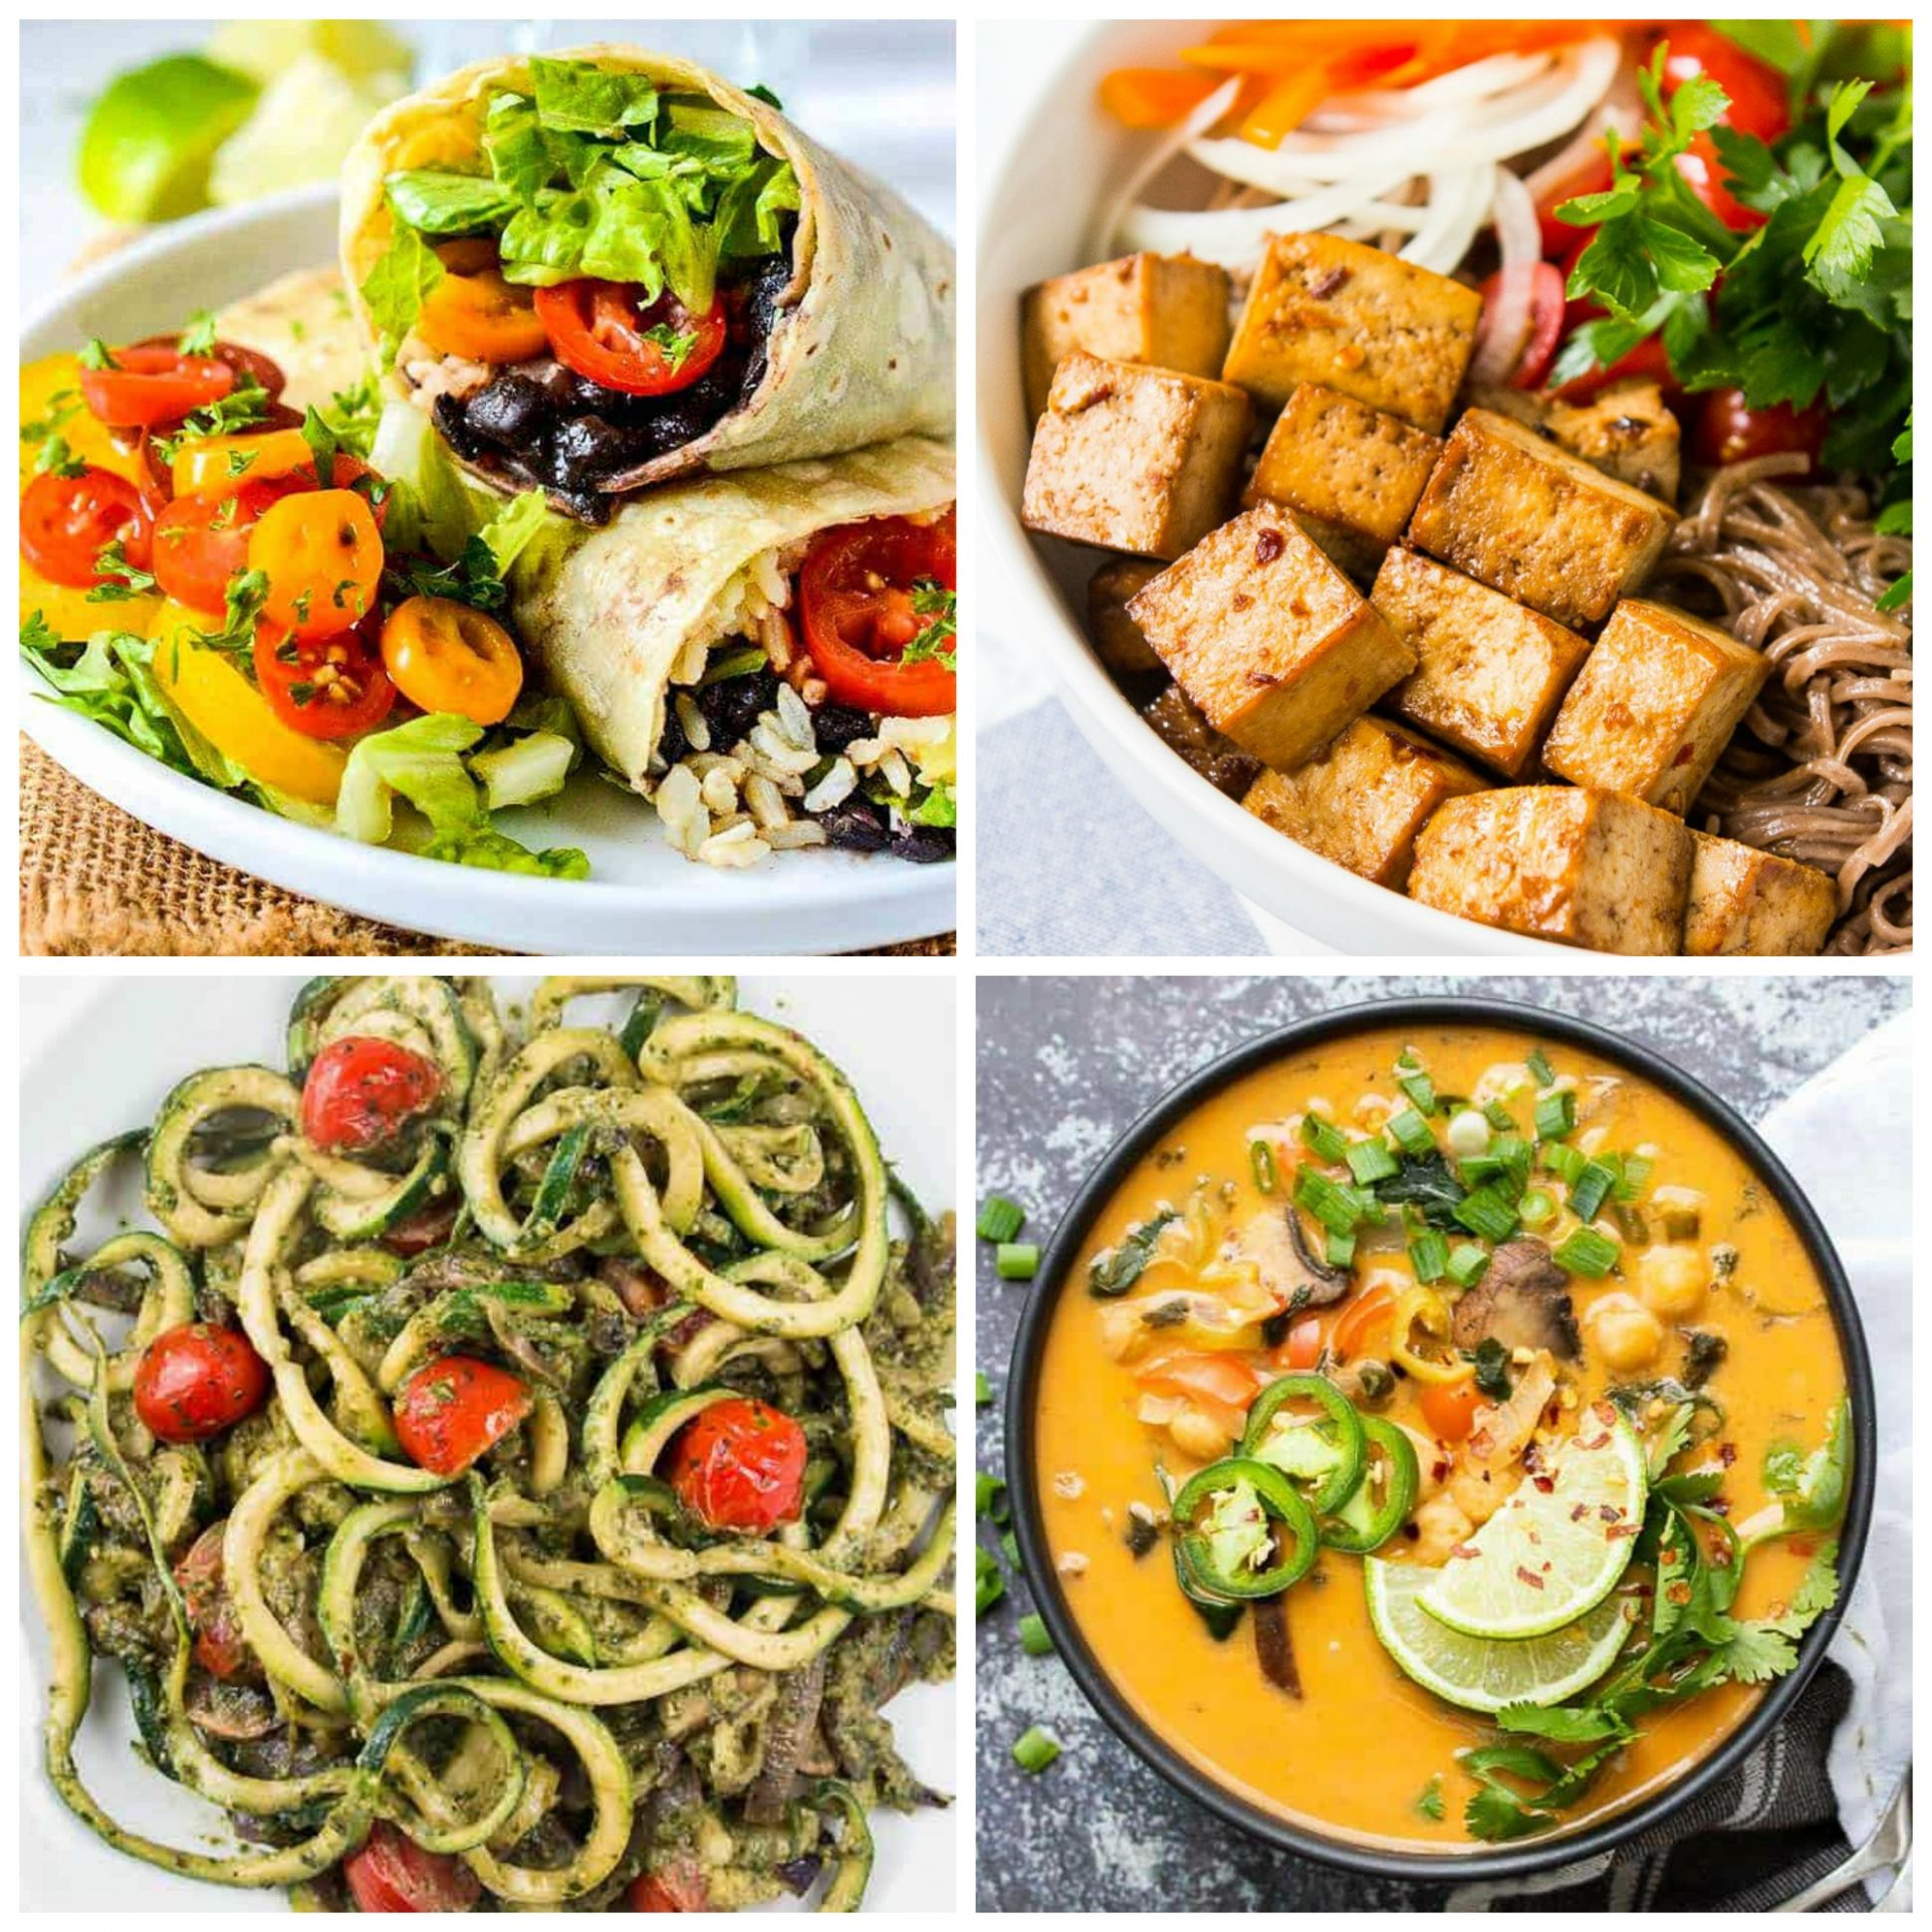 8 AMAZING Vegan Meals for Weight Loss (Gluten-Free & Low-Calorie) - Recipes Vegetarian Low Calorie